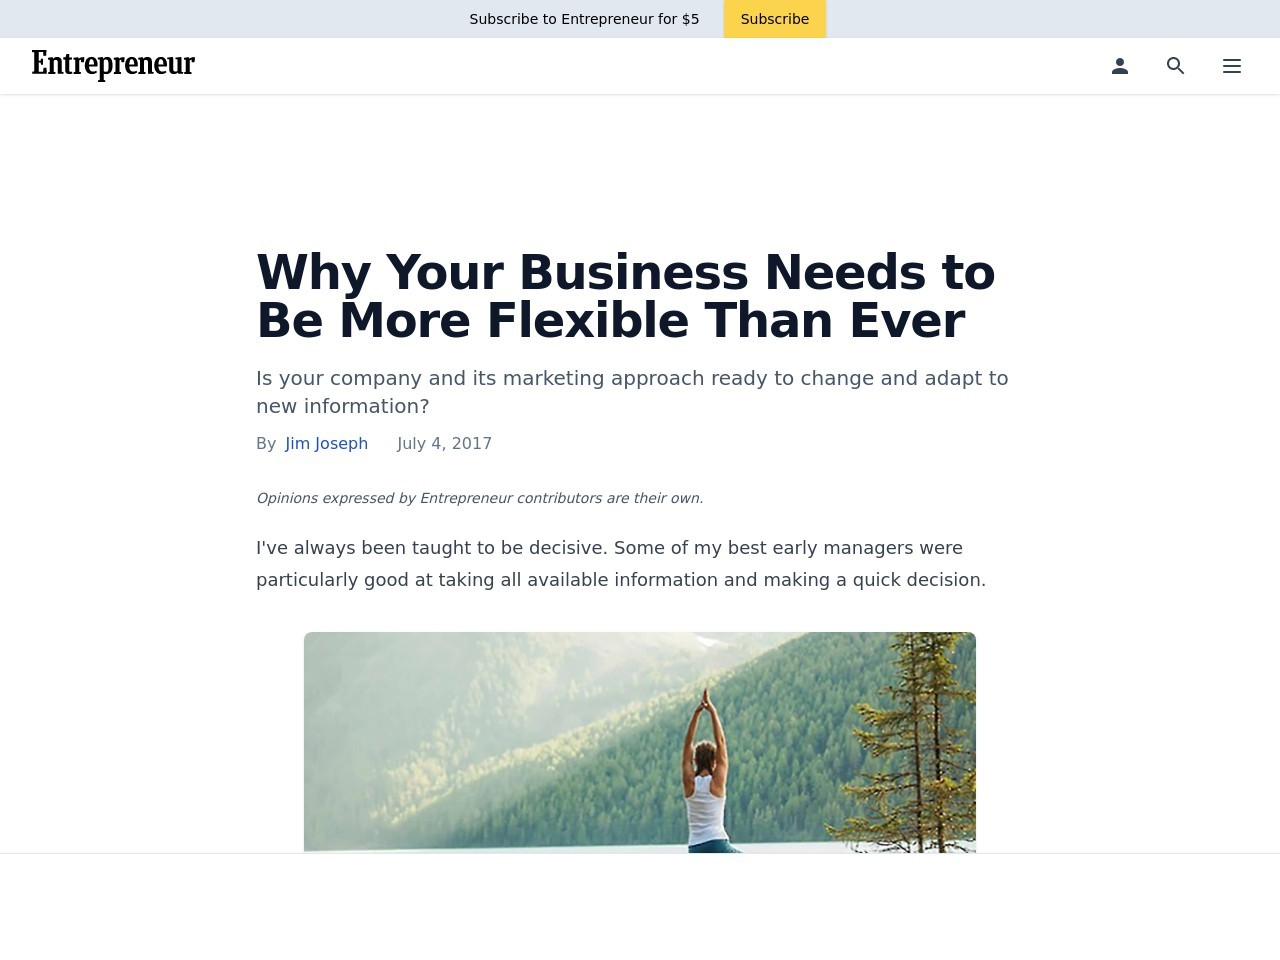 Why Your Business Needs to Be More Flexible Than Ever